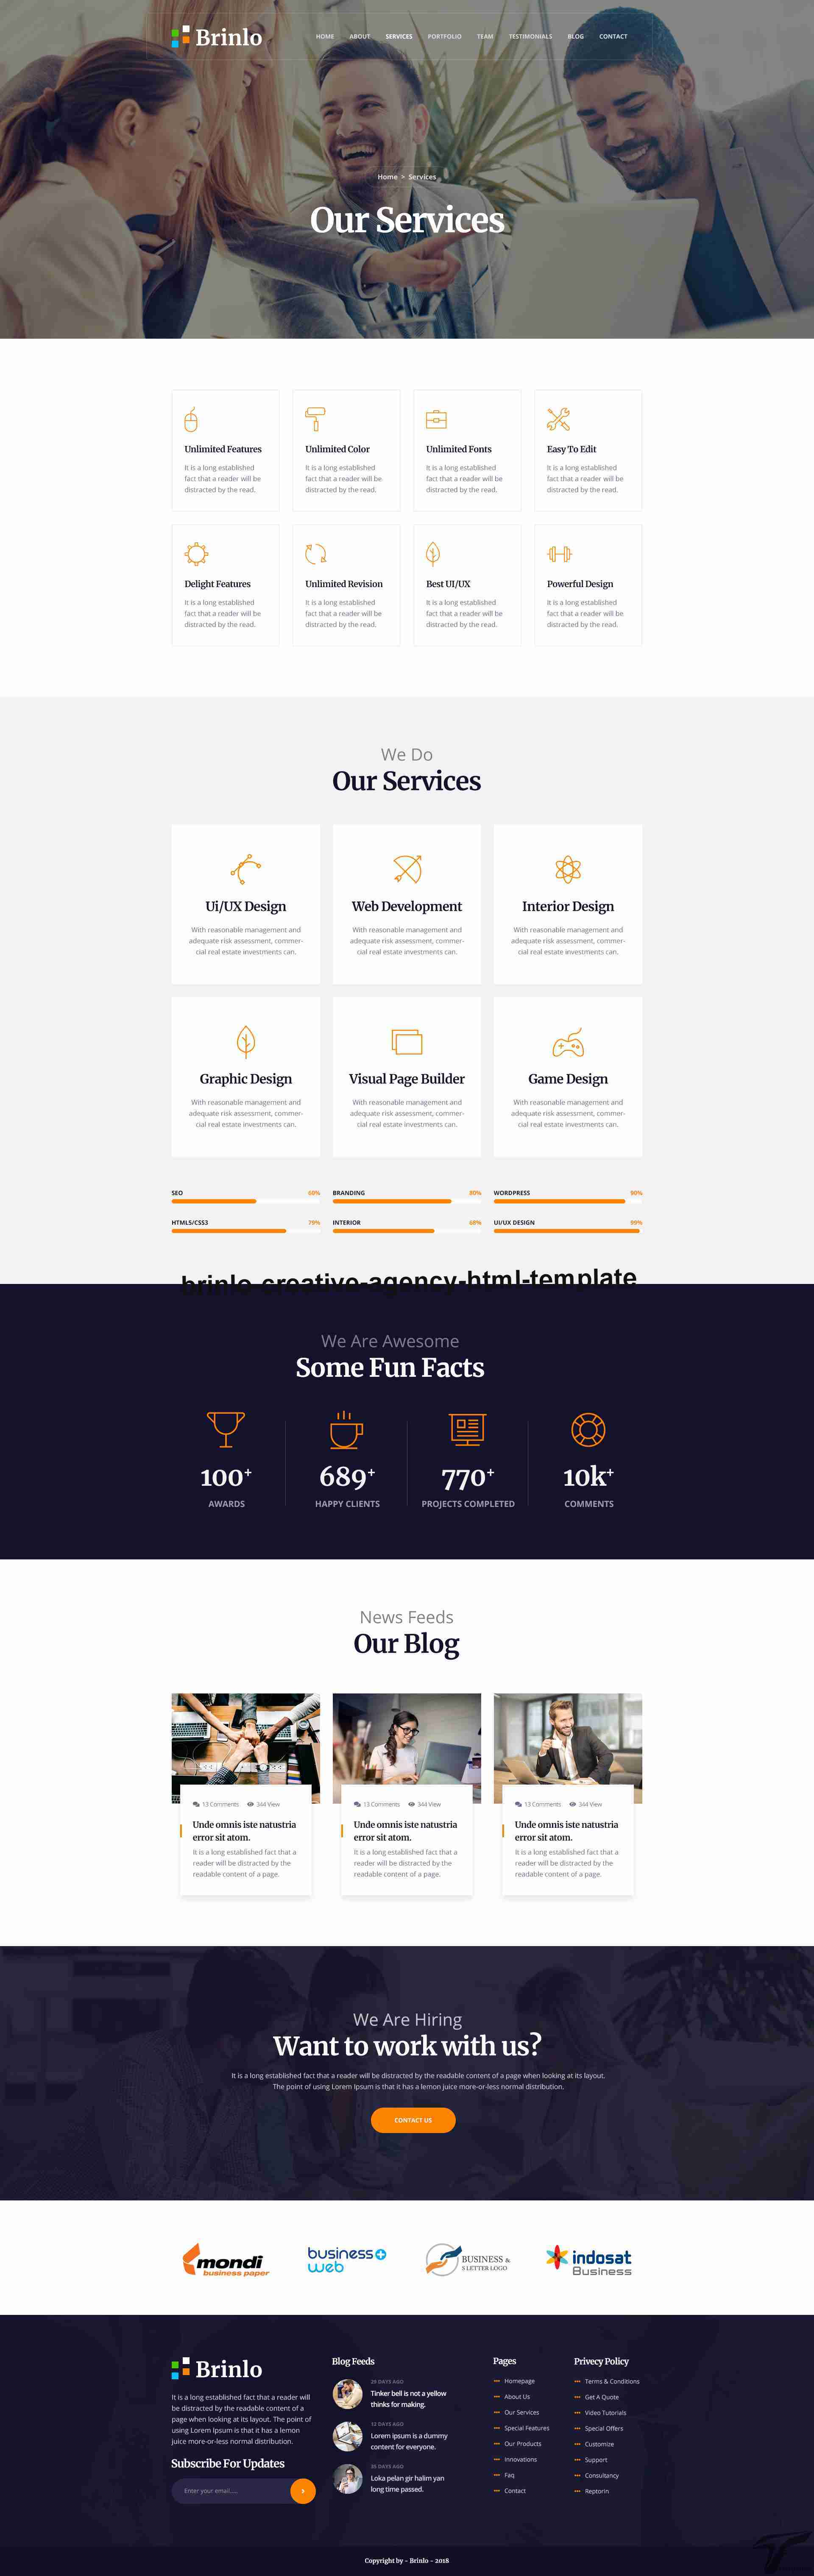 https://images.besthemes.com/images/h1_brinlo-creative-agency-html-template4-_-254099727/prevew_images/03_services.jpg